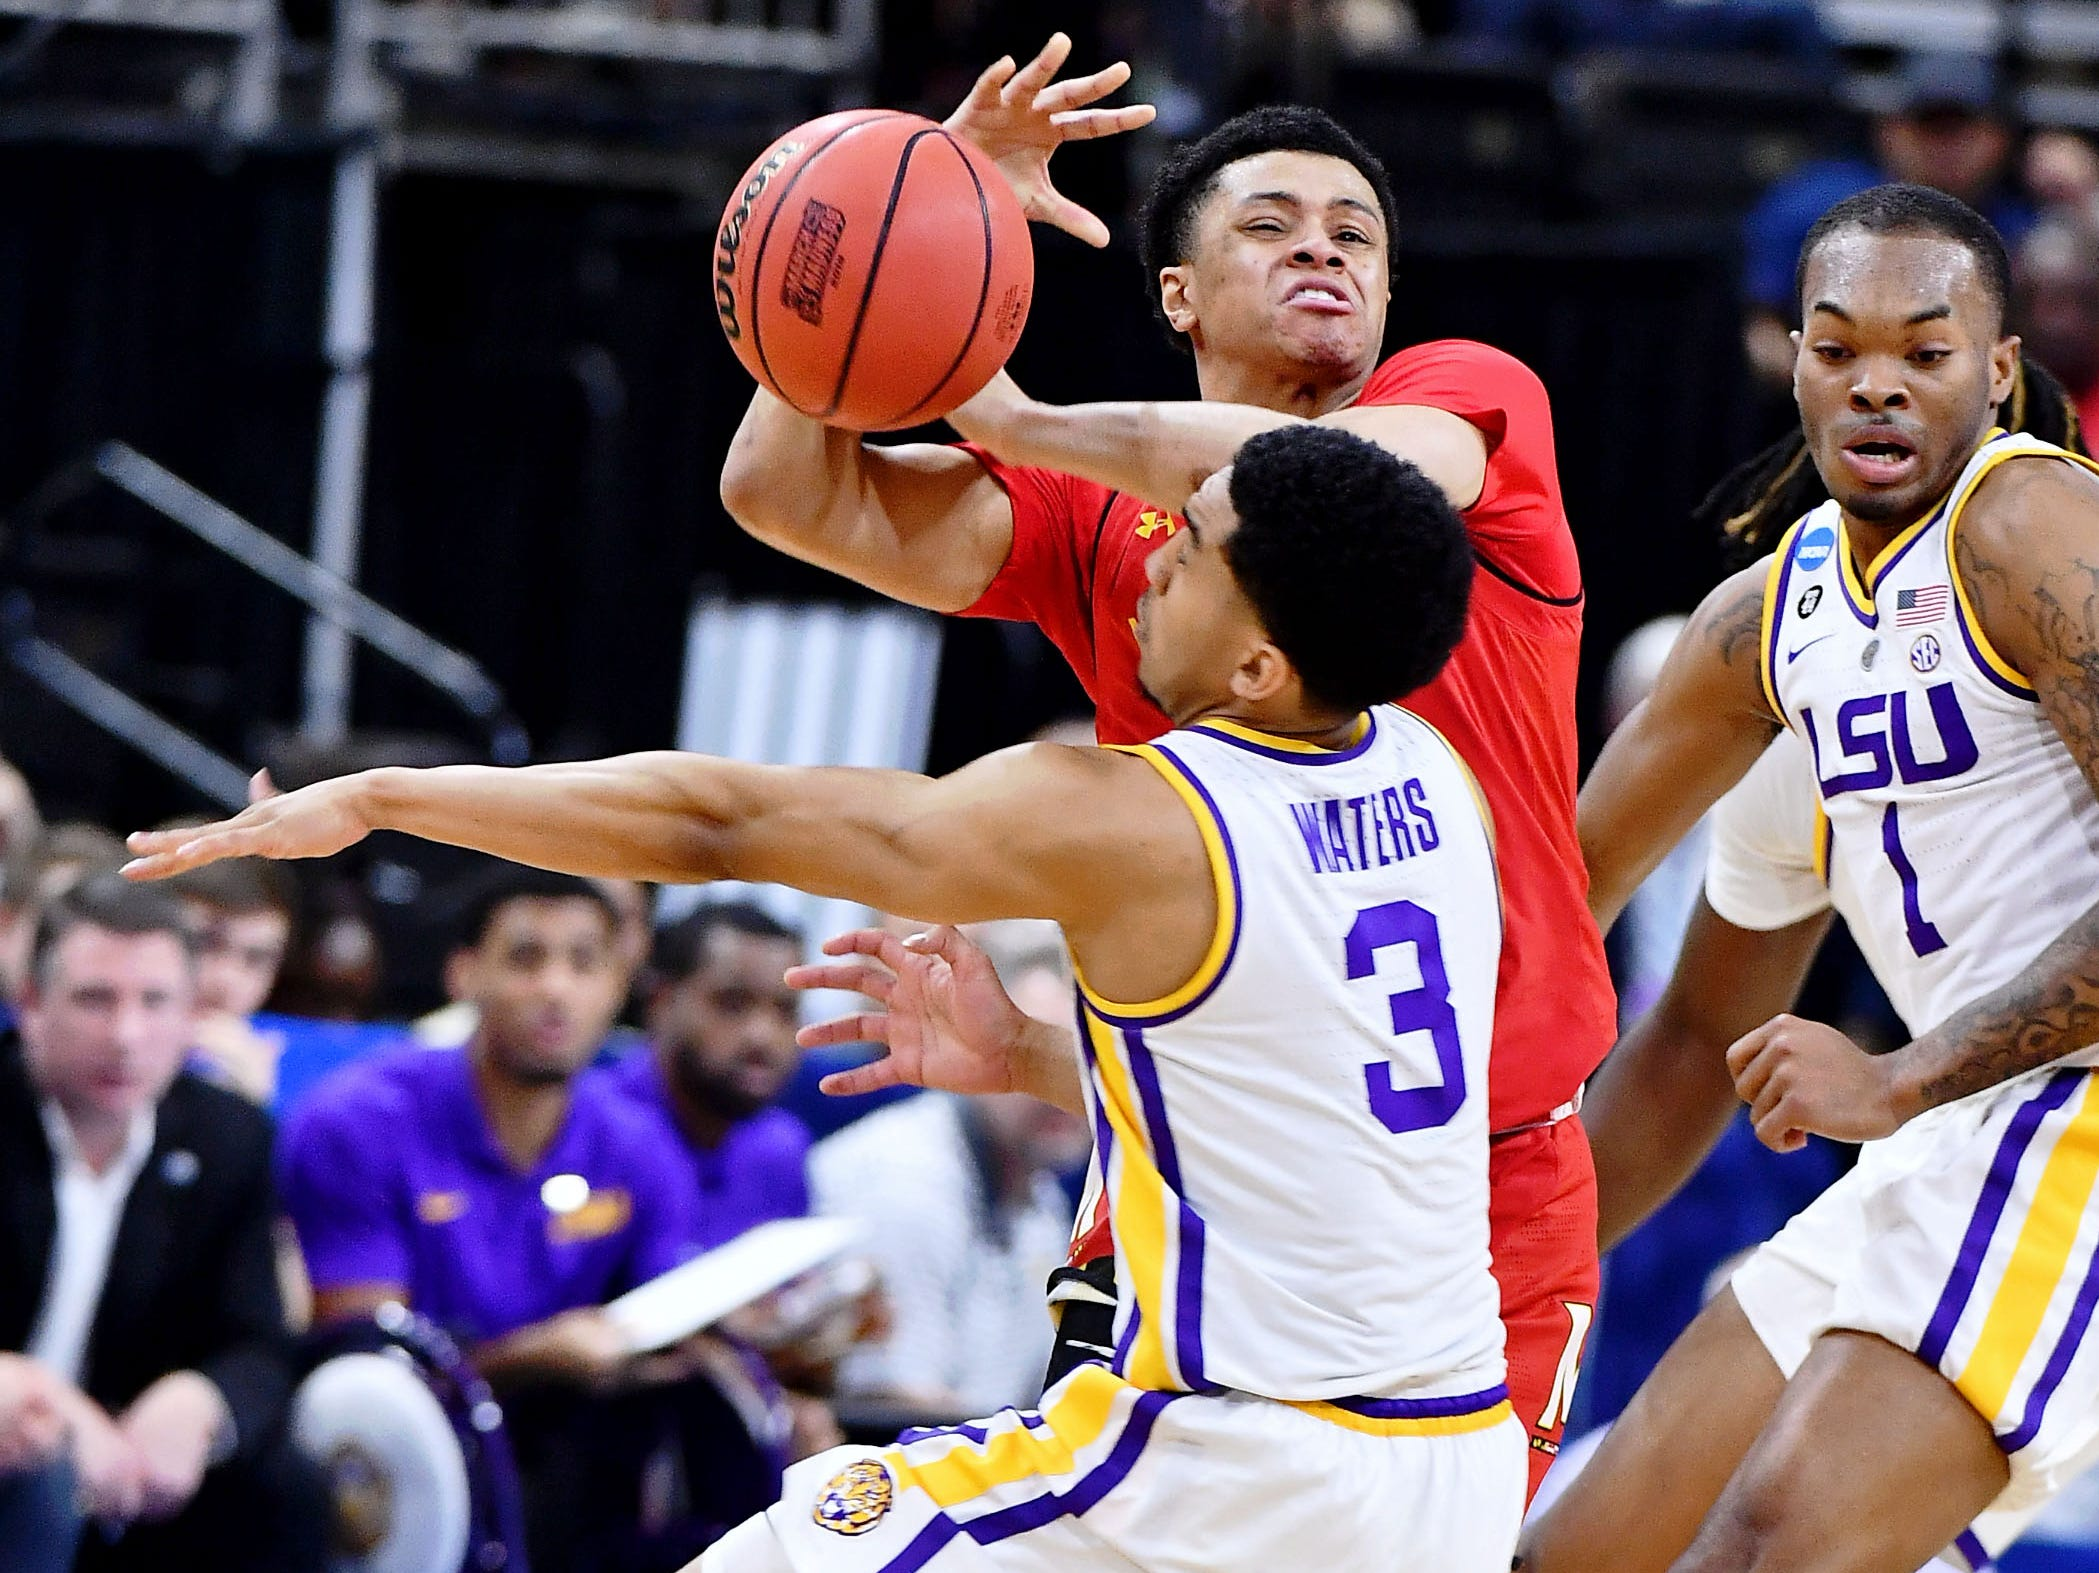 Mar 23, 2019; Jacksonville, FL, USA; LSU Tigers guard Tremont Waters (3) attempts to steal the ball from Maryland Terrapins guard Anthony Cowan Jr. (1) during the first half in the second round of the 2019 NCAA Tournament at Jacksonville Veterans Memorial Arena. Mandatory Credit: John David Mercer-USA TODAY Sports